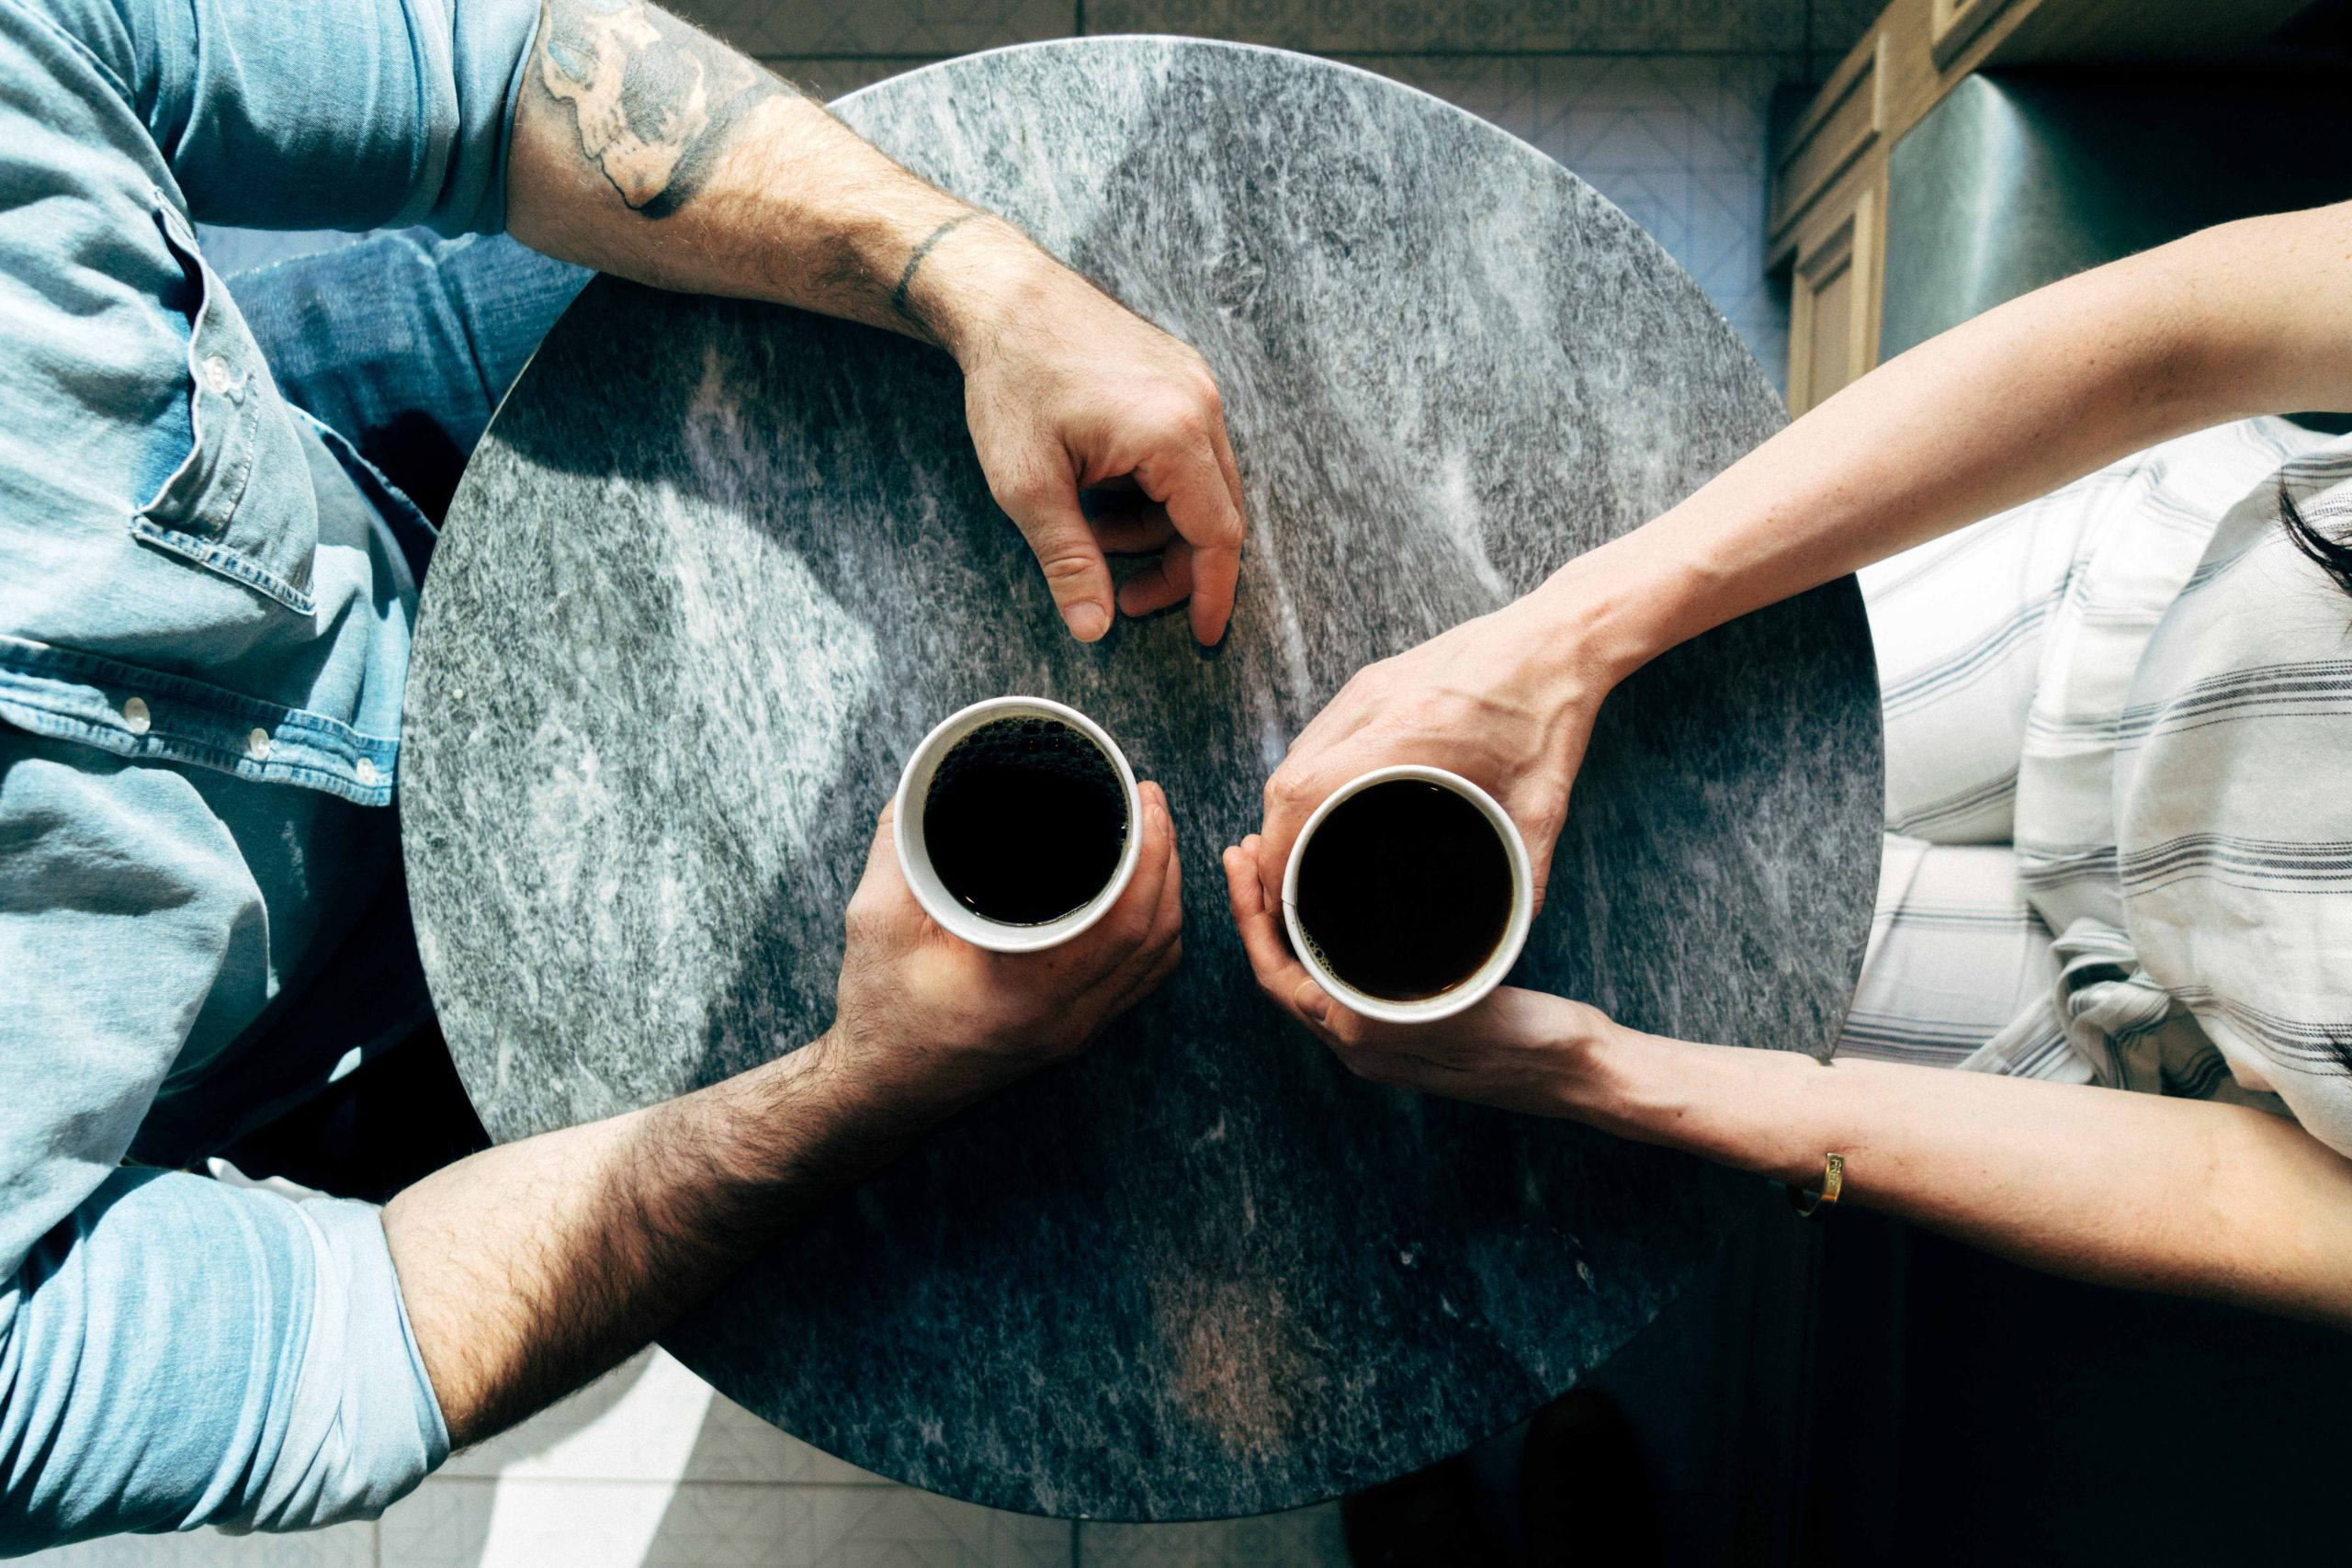 two people sitting across each other and having a cup of coffee in their hands